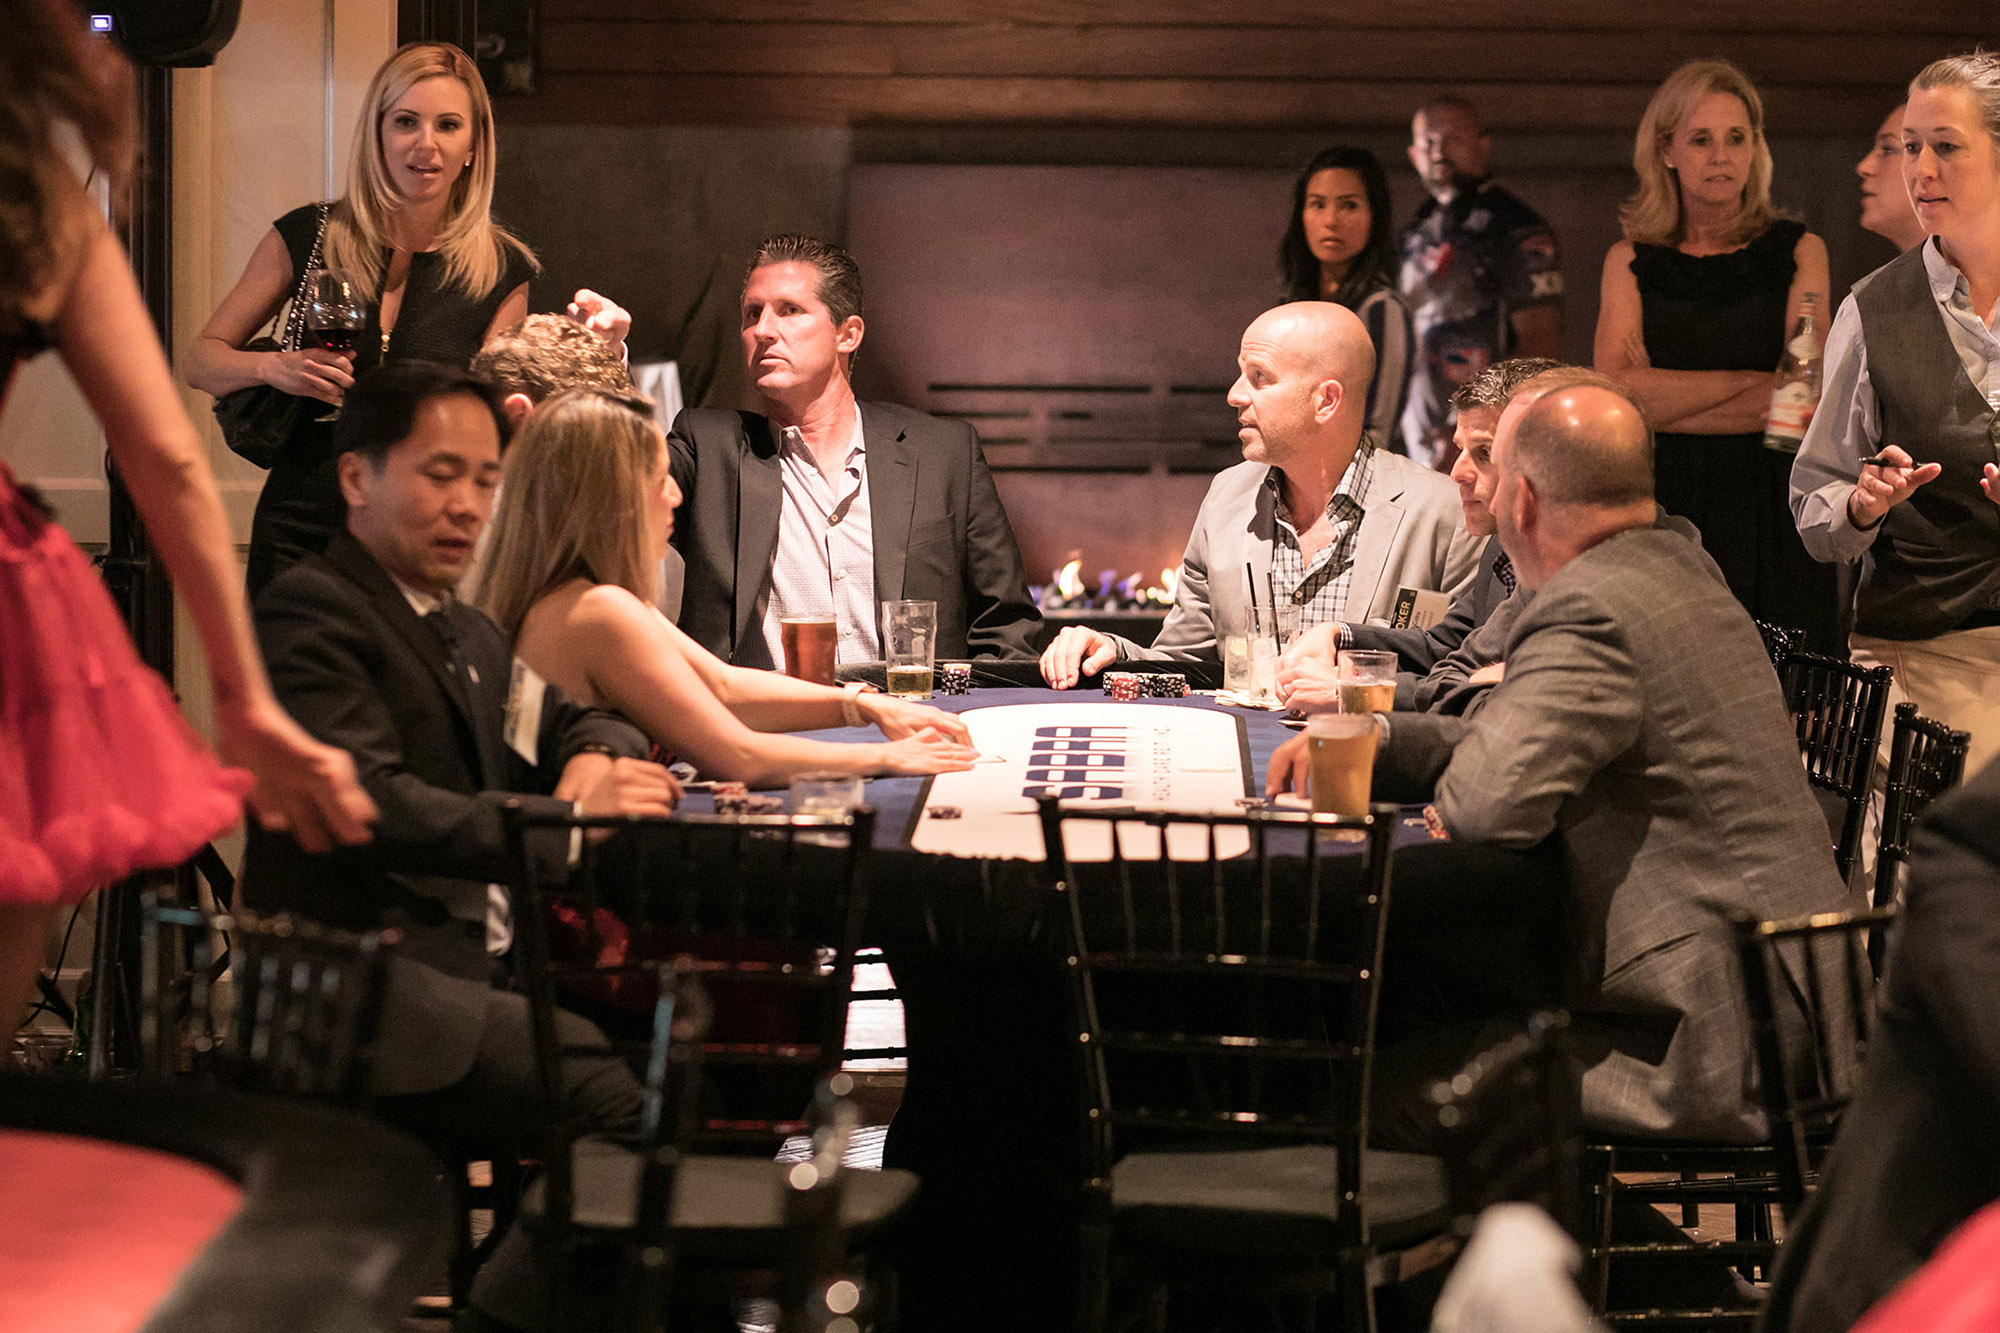 another photo of poker night